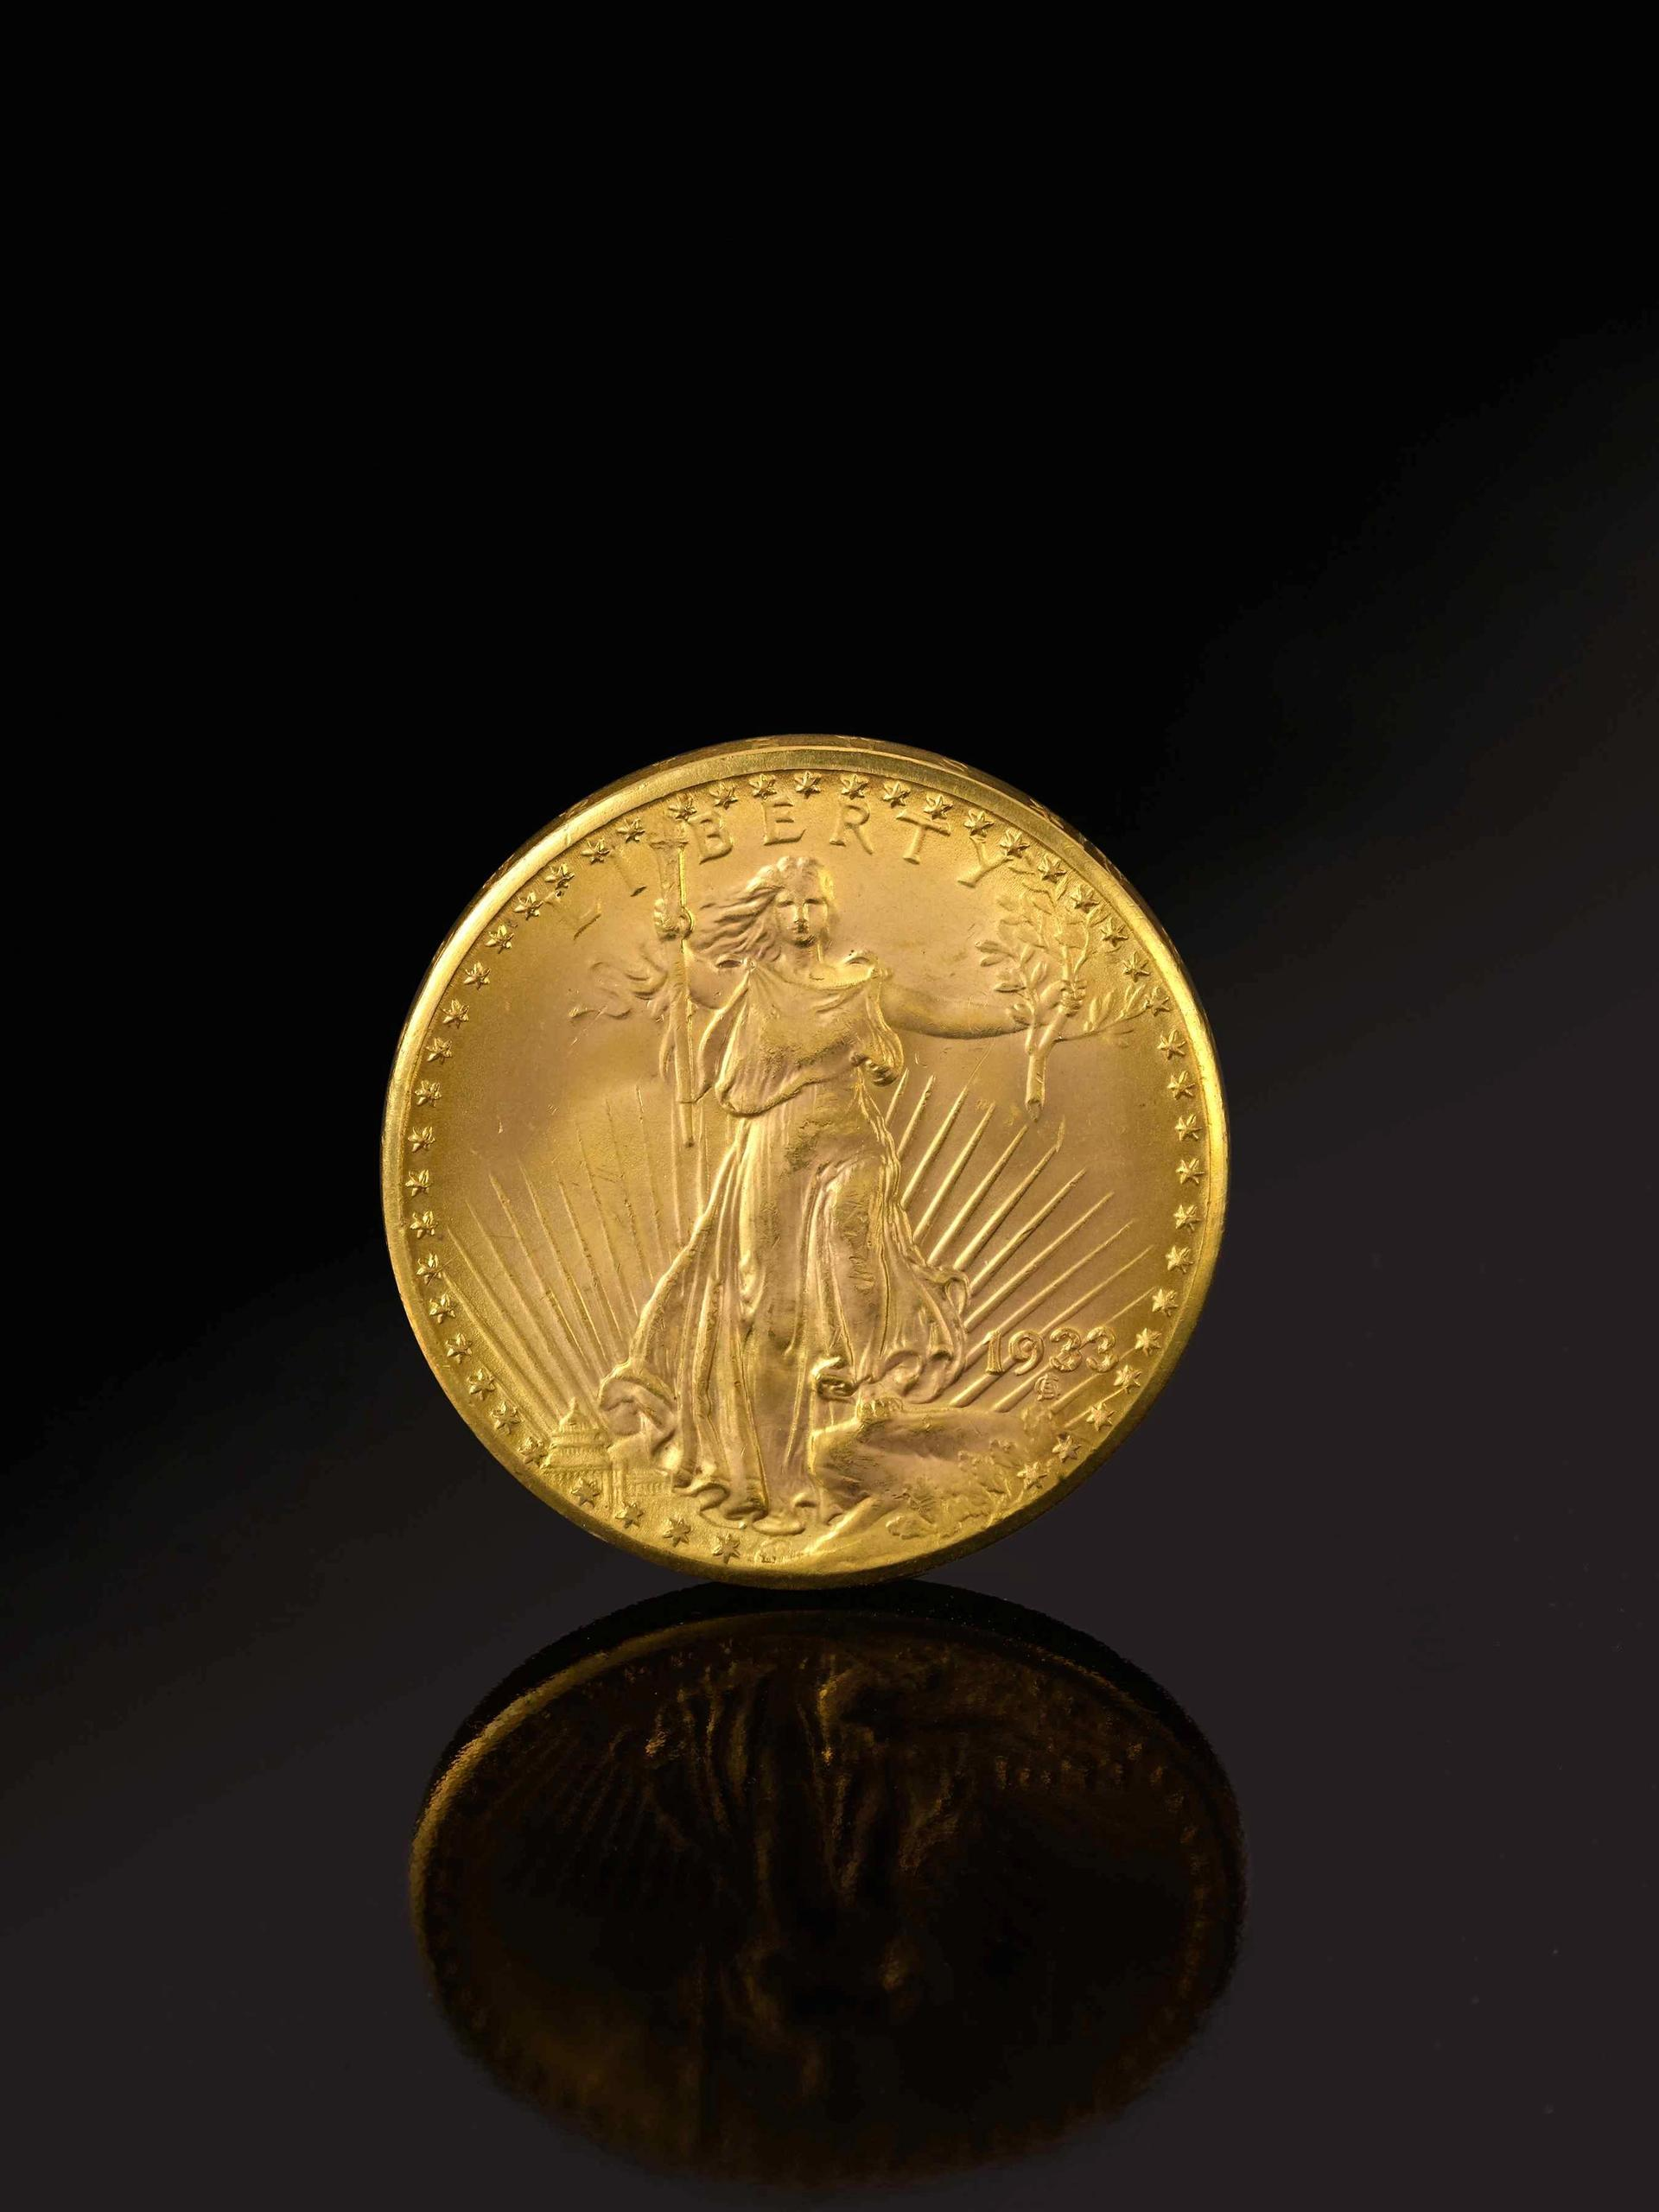 The 1933 Double Eagle Coin Courtesy of Sotheby's. Photography by SquareMoose